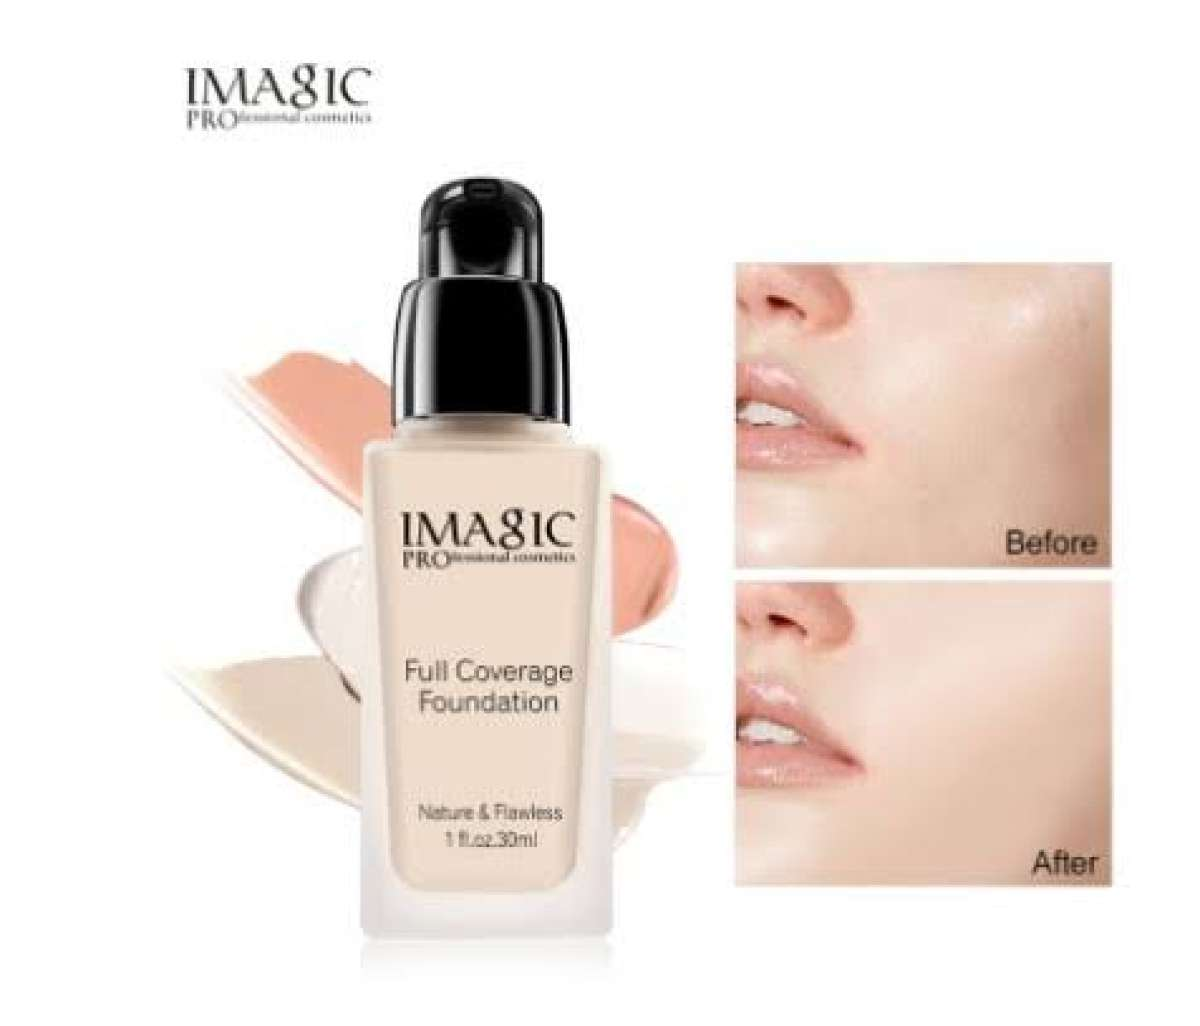 Imagic Full Coverage Foundation 1214 Natural Buff Buy Online At Best Prices In Bangladesh Daraz Com Bd